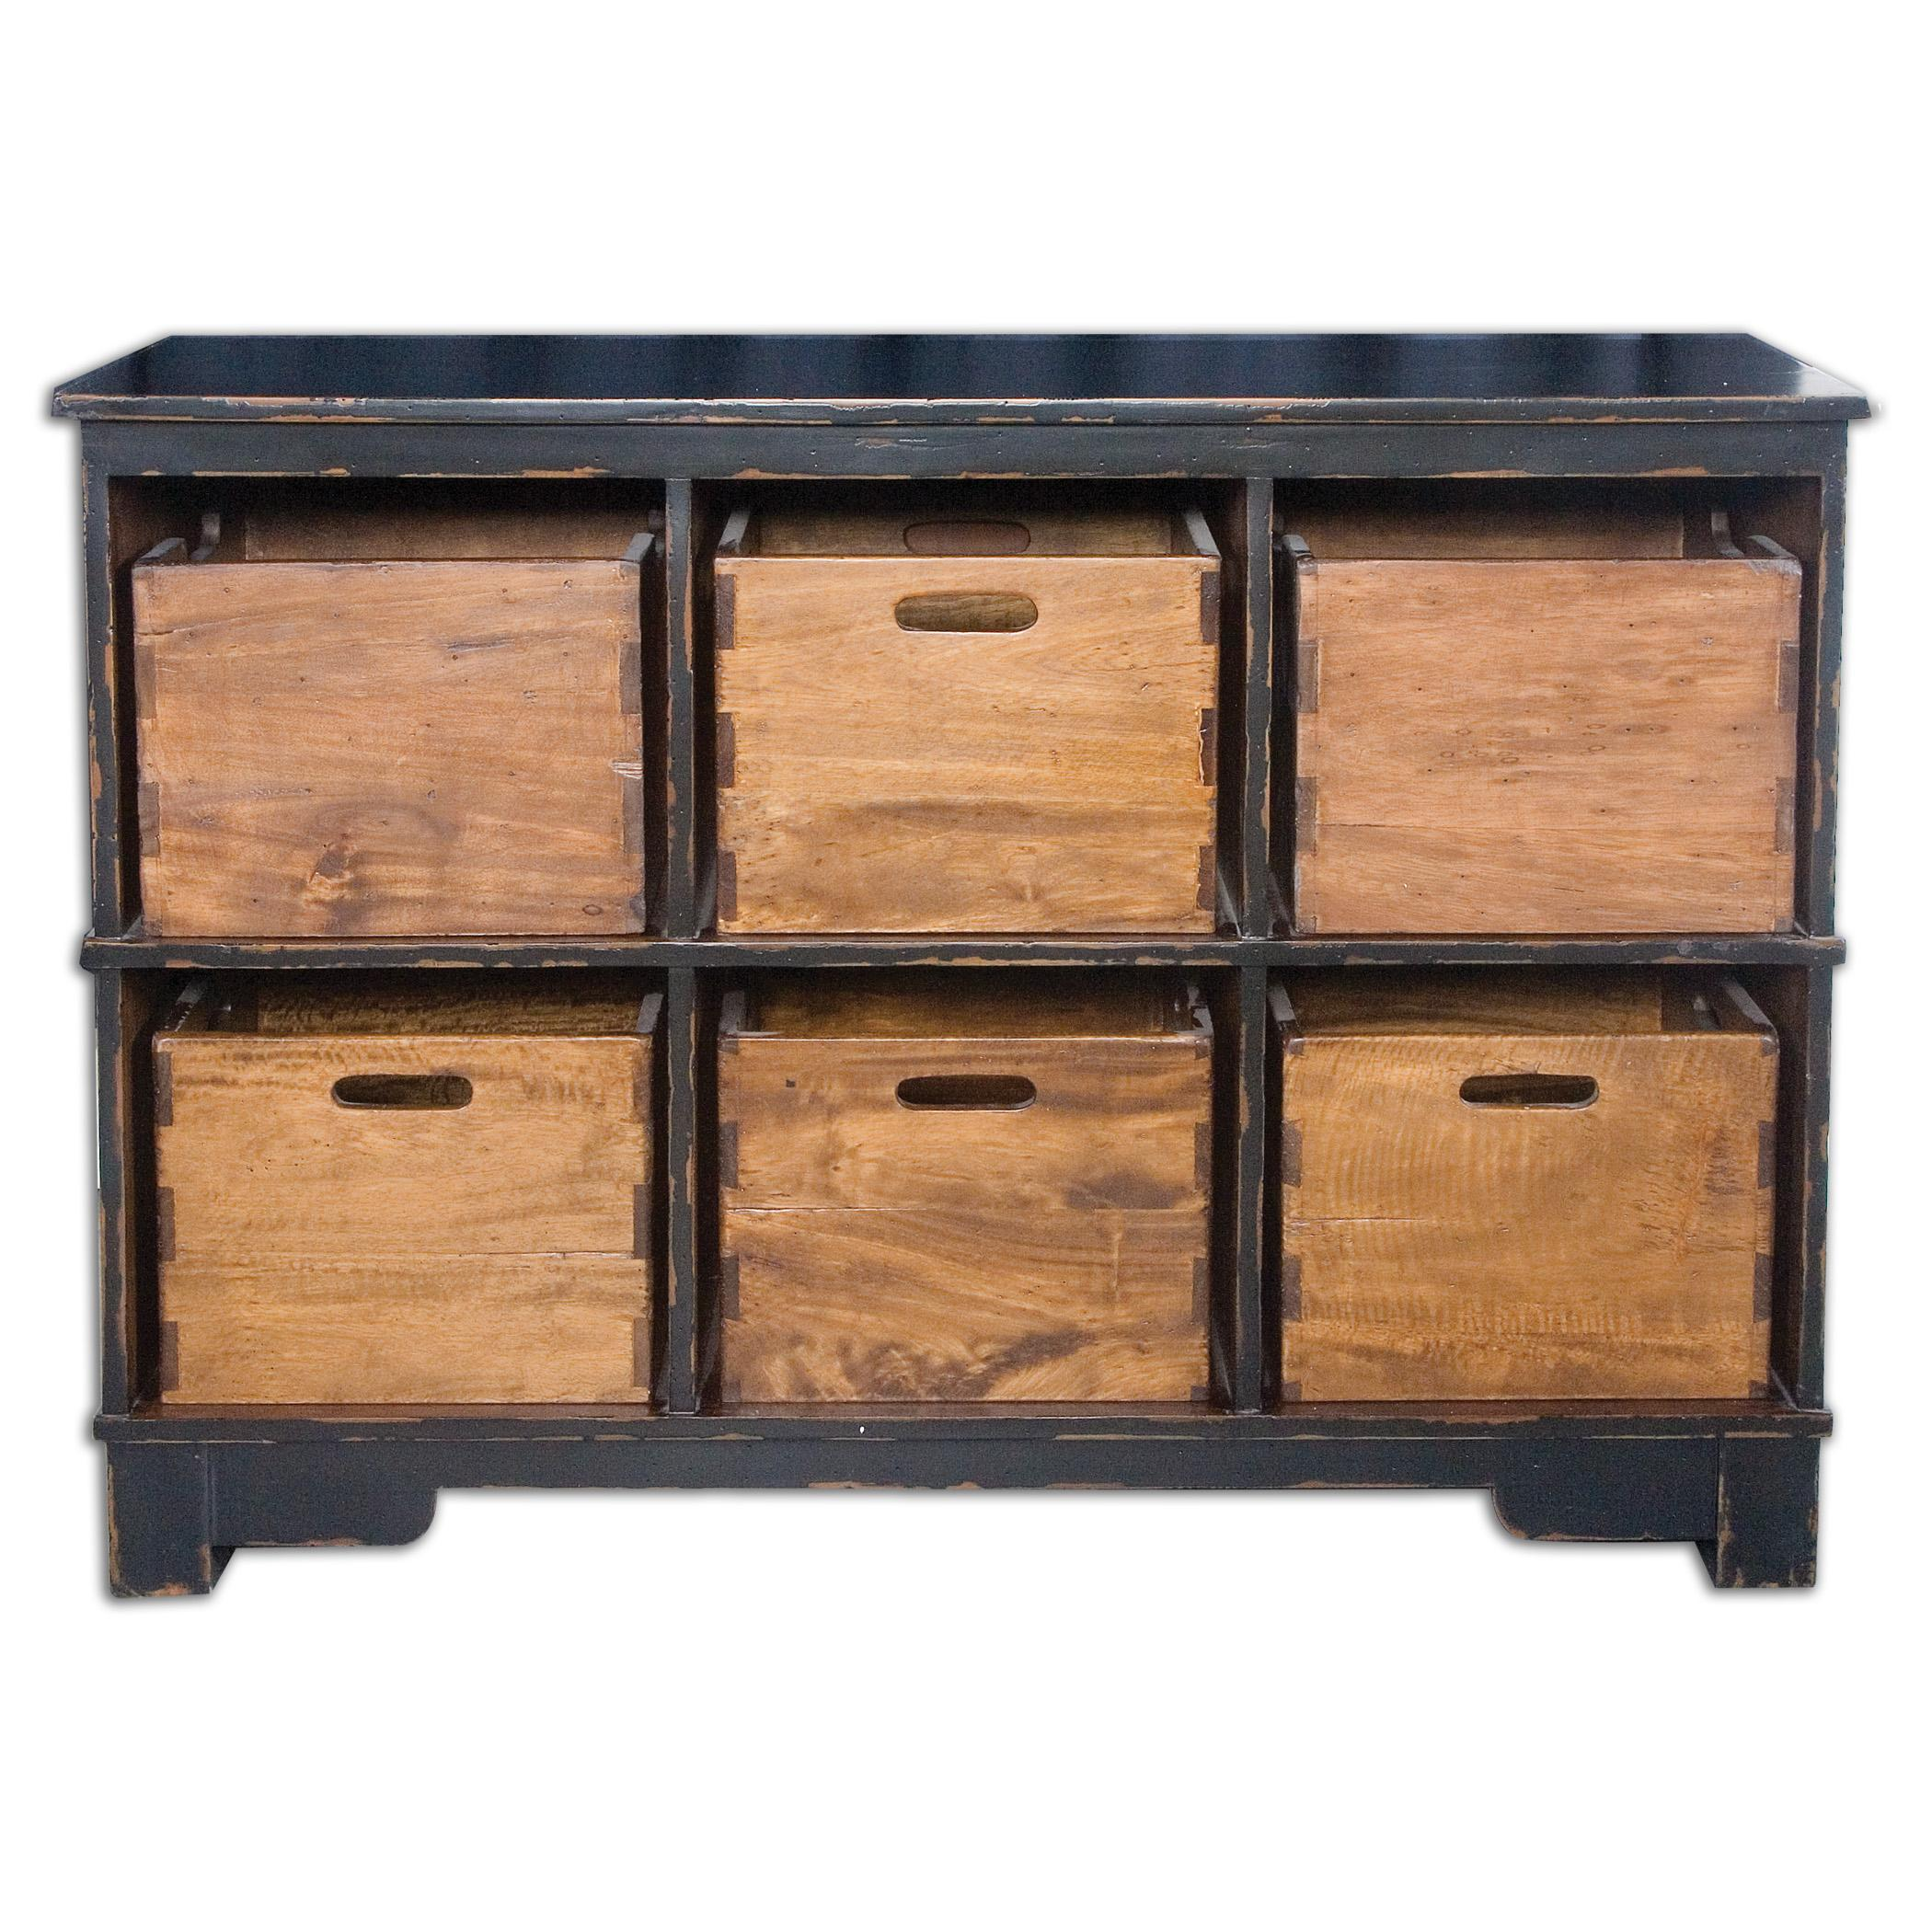 Accent Furniture - Chests Ardusin Hobby Cupboard by Uttermost at Factory Direct Furniture